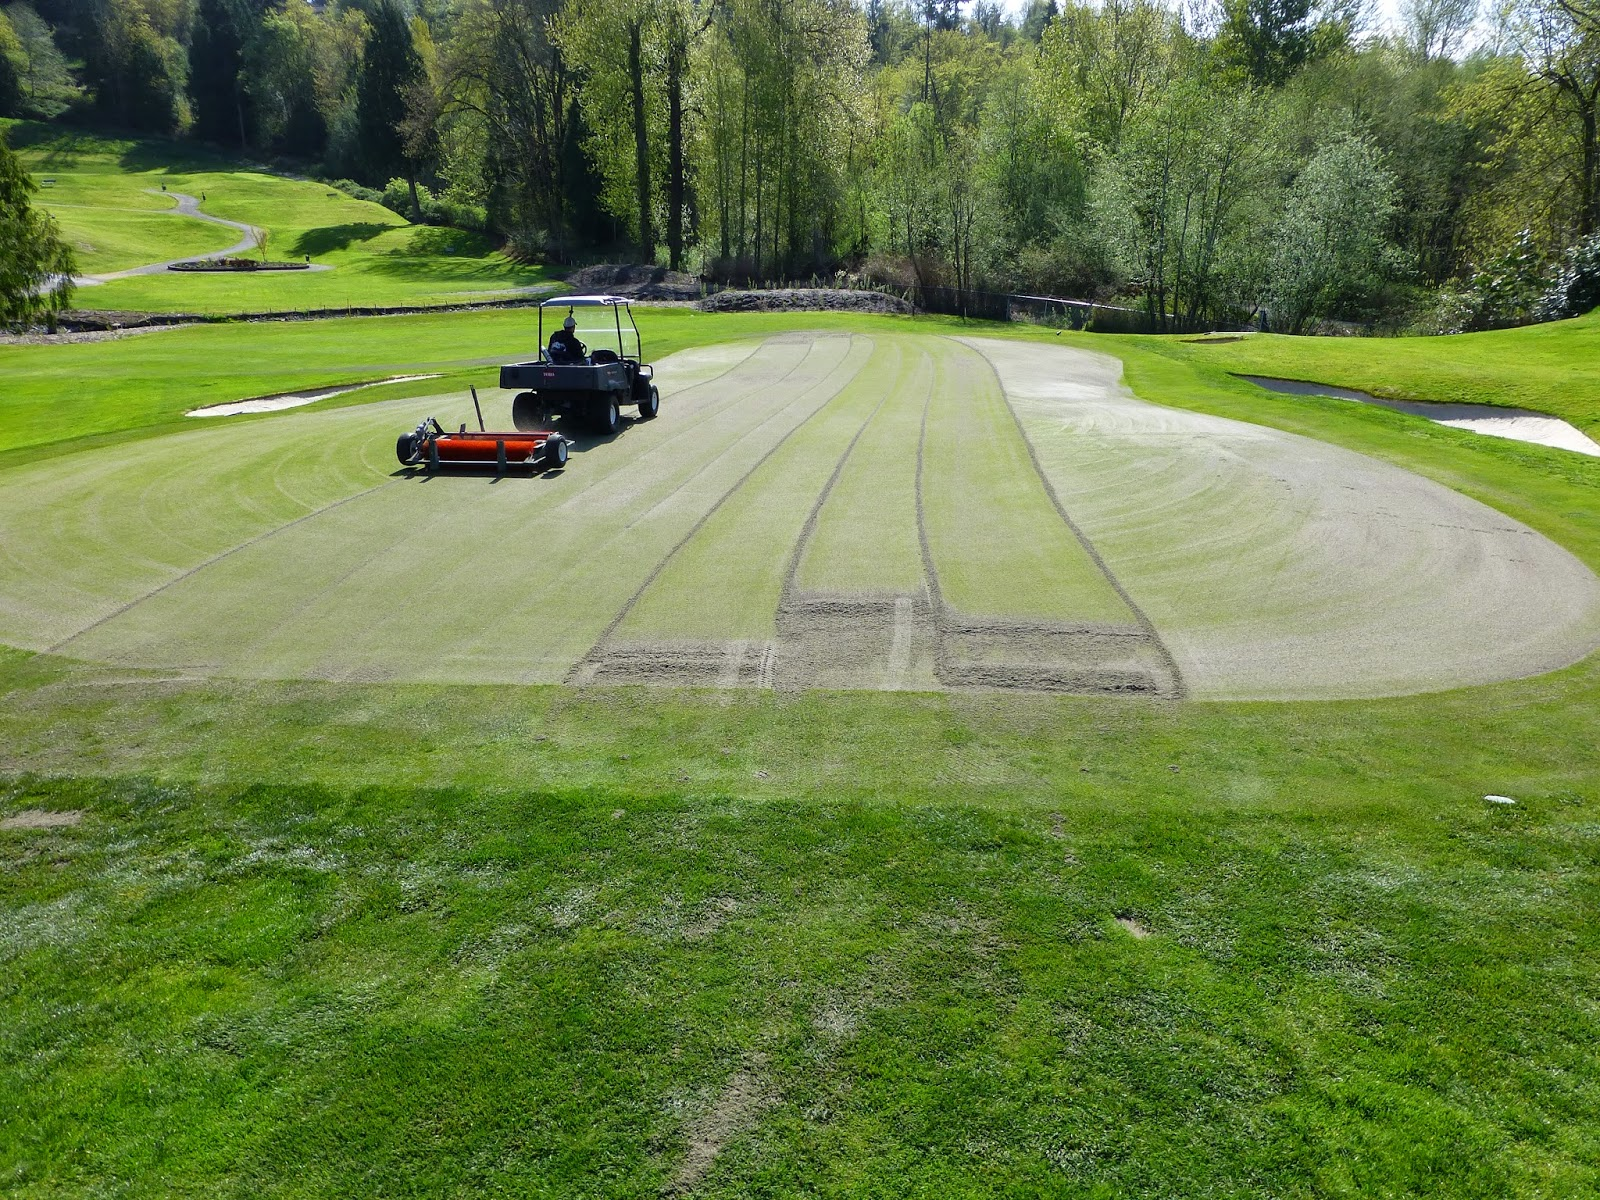 Golf Course Maintenance - Aeration